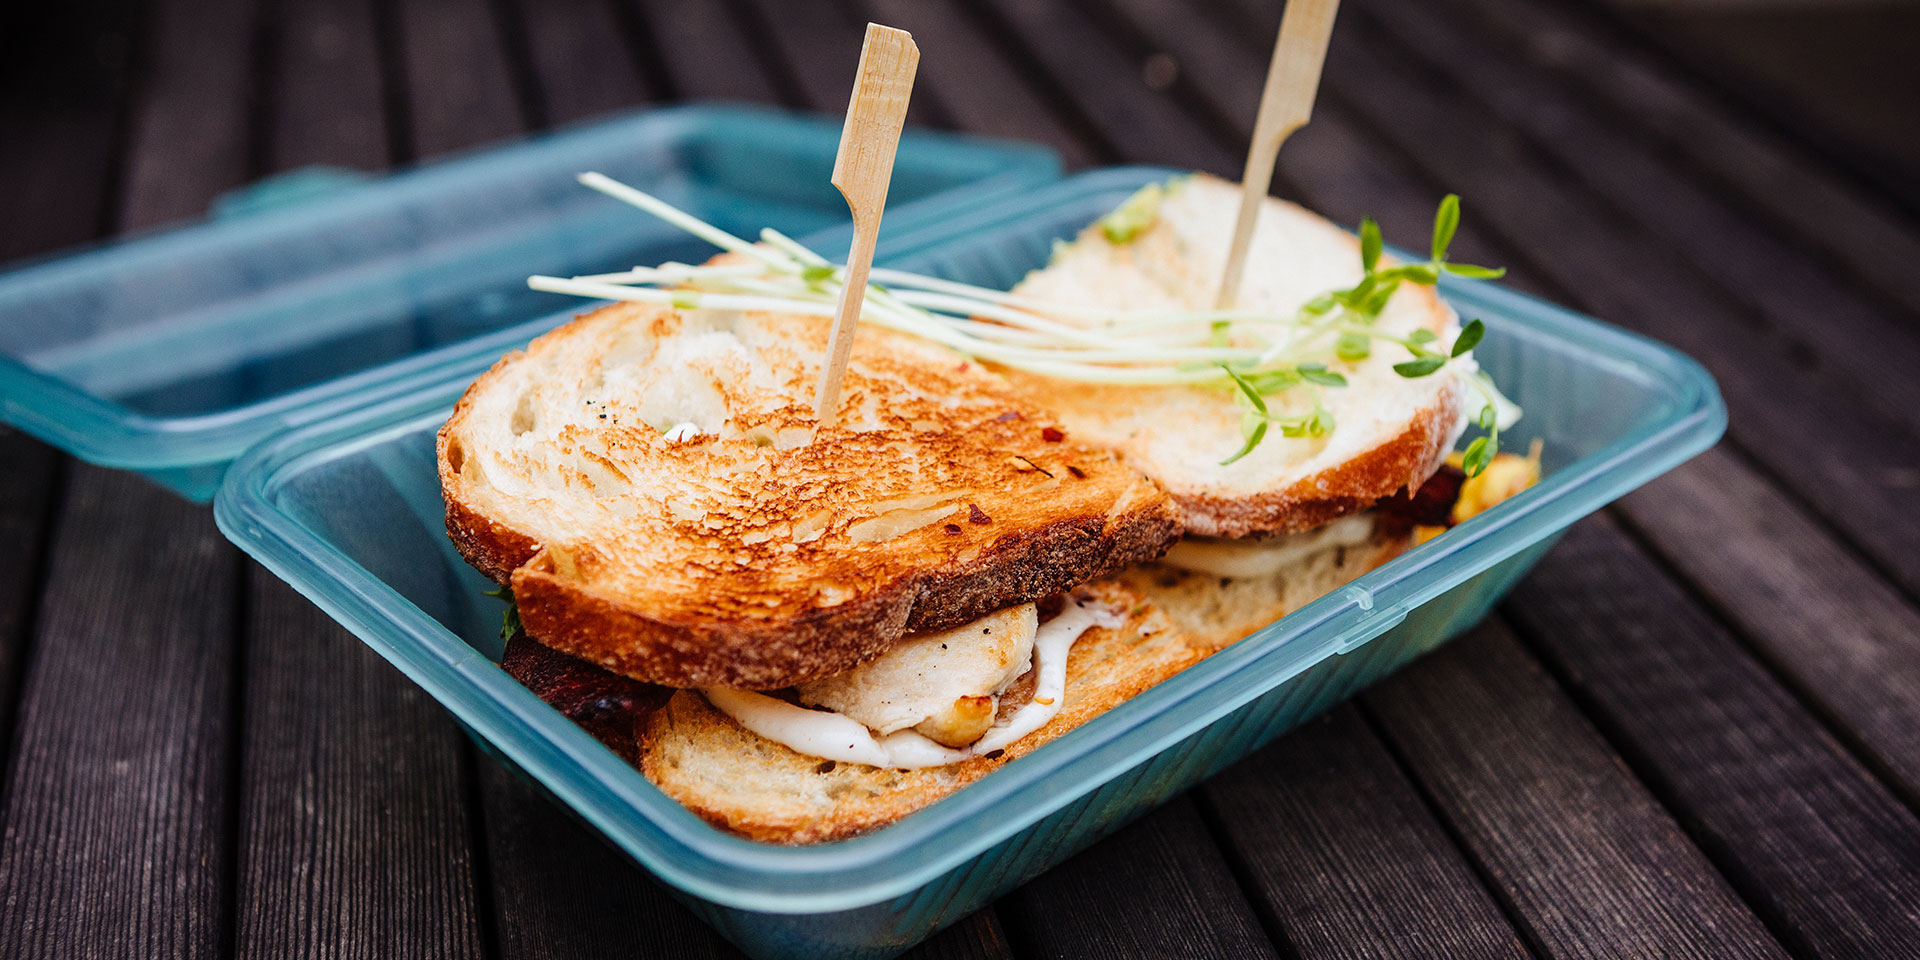 sandwich in a reusable takeout container